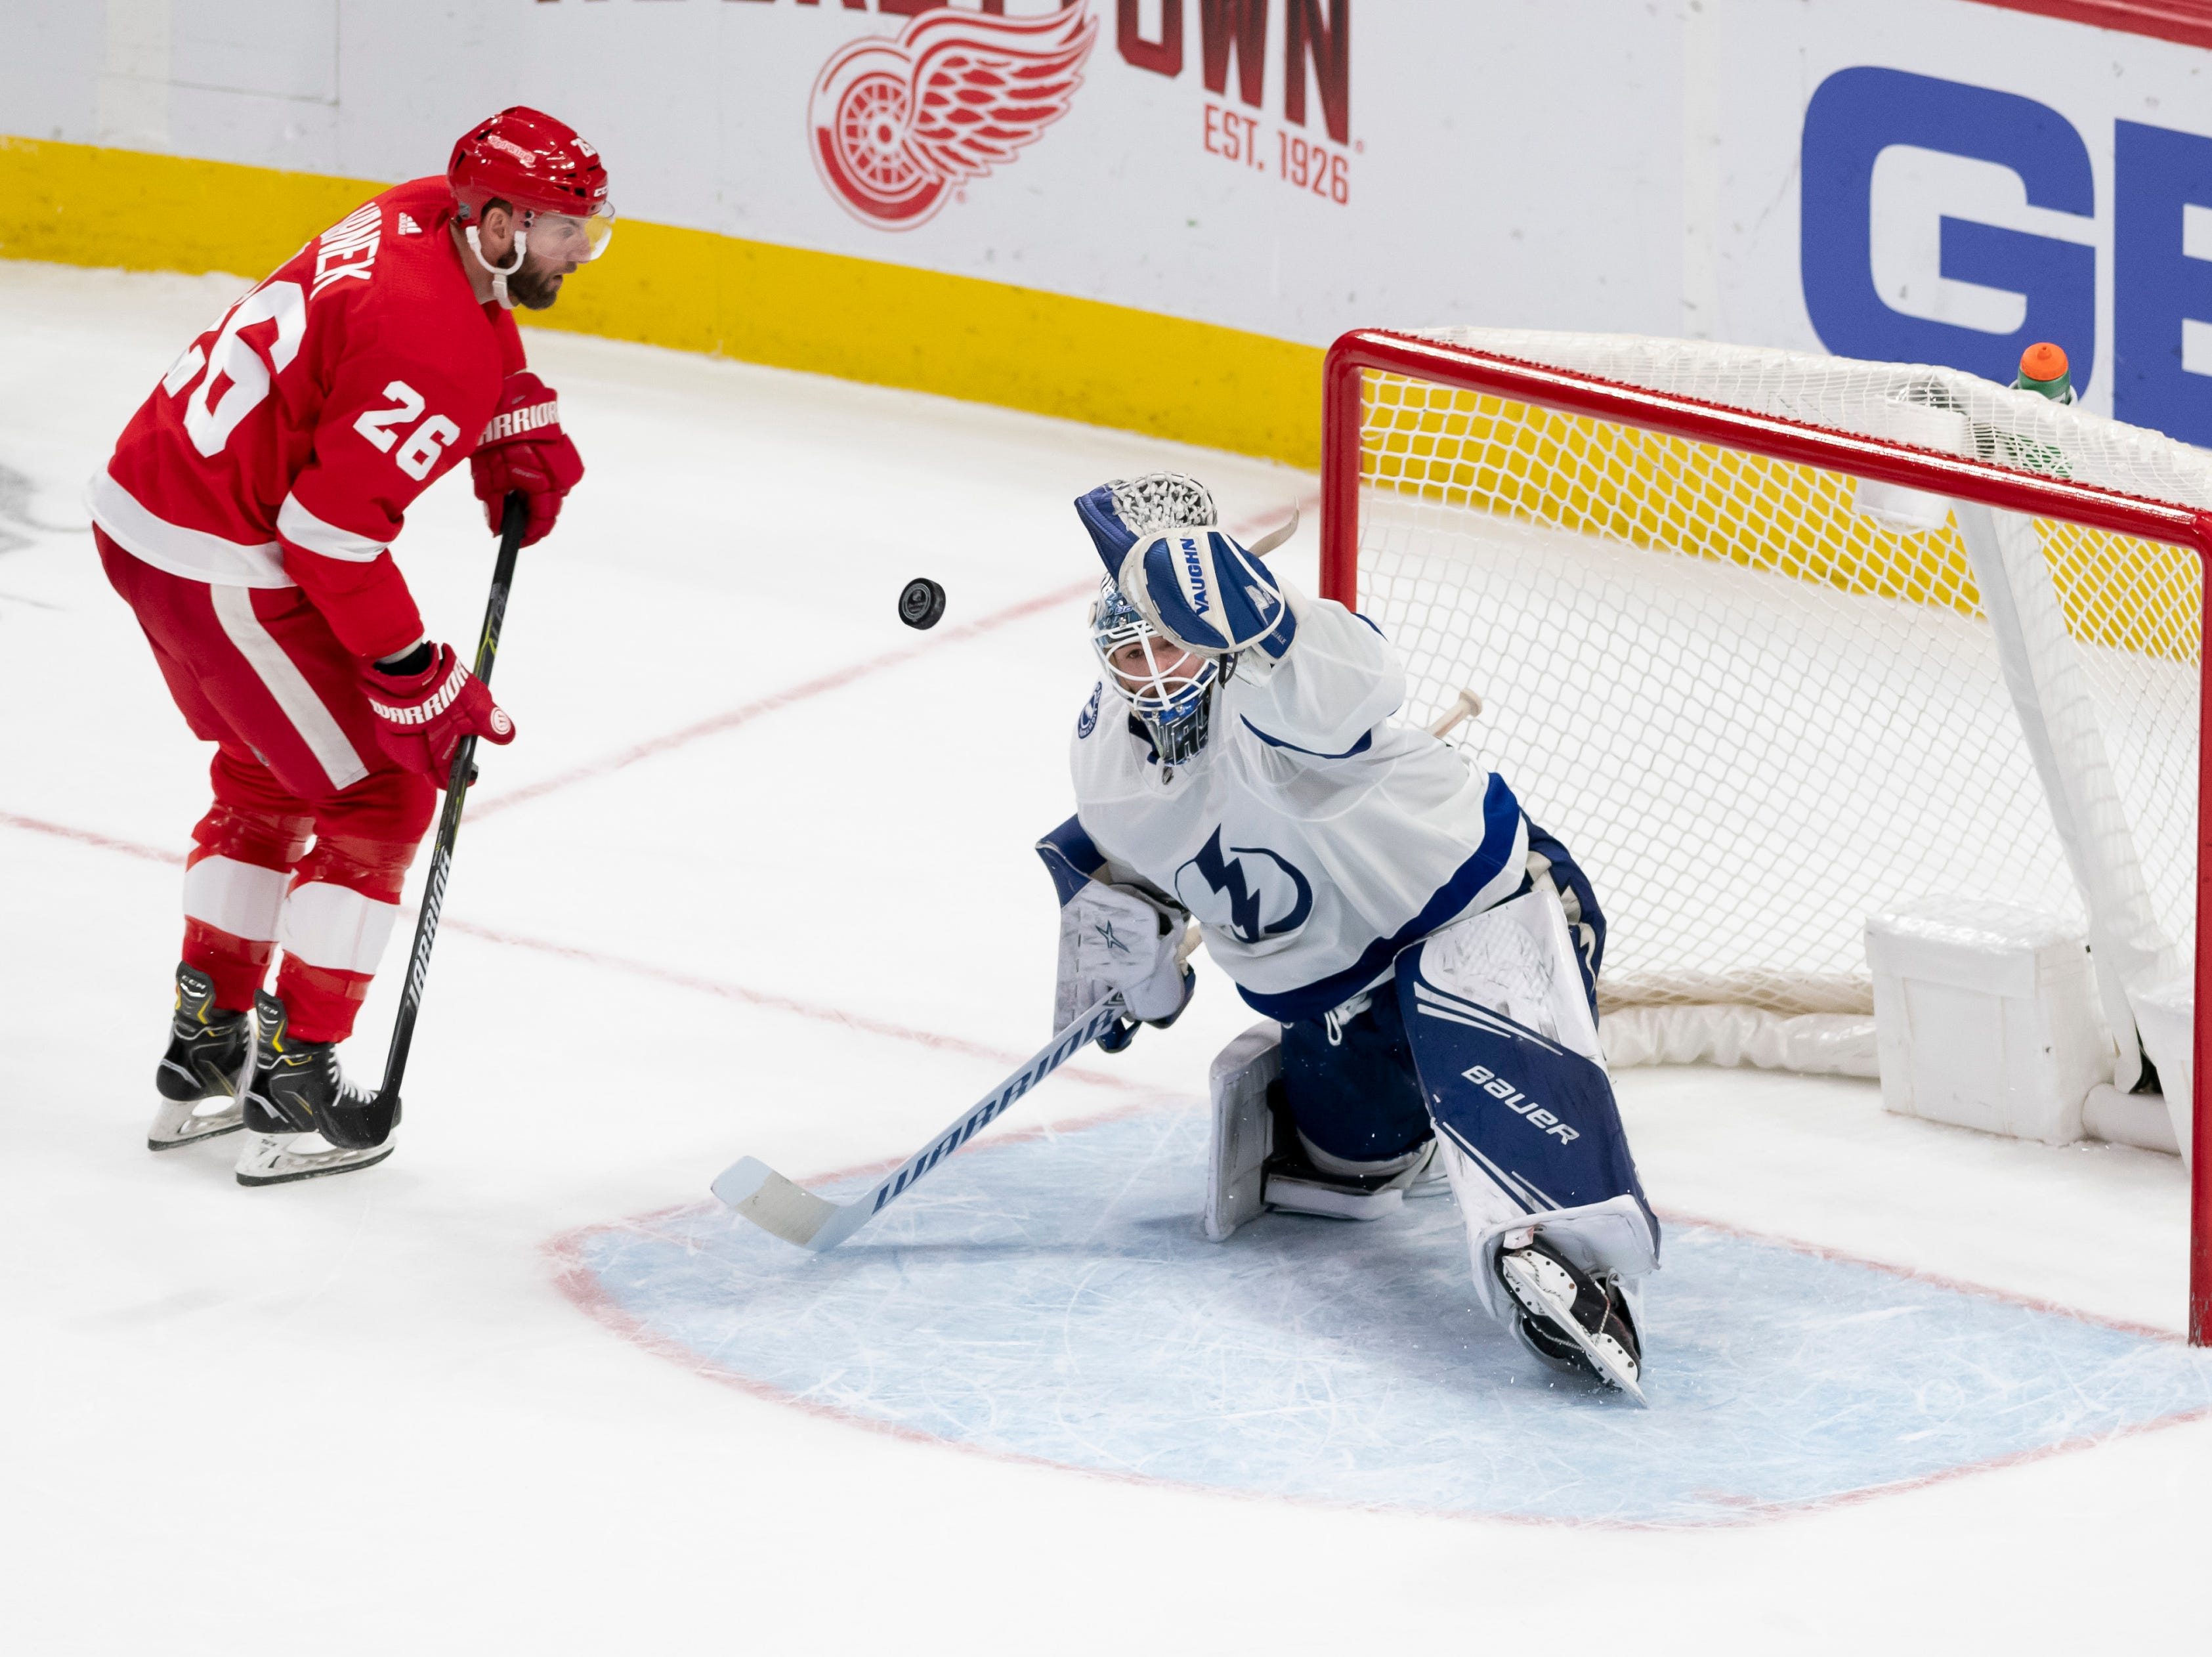 Detroit left wing Thomas Vanek gets a shot stopped by Tampa Bay goaltender Edward Pasquale during the shoot out.